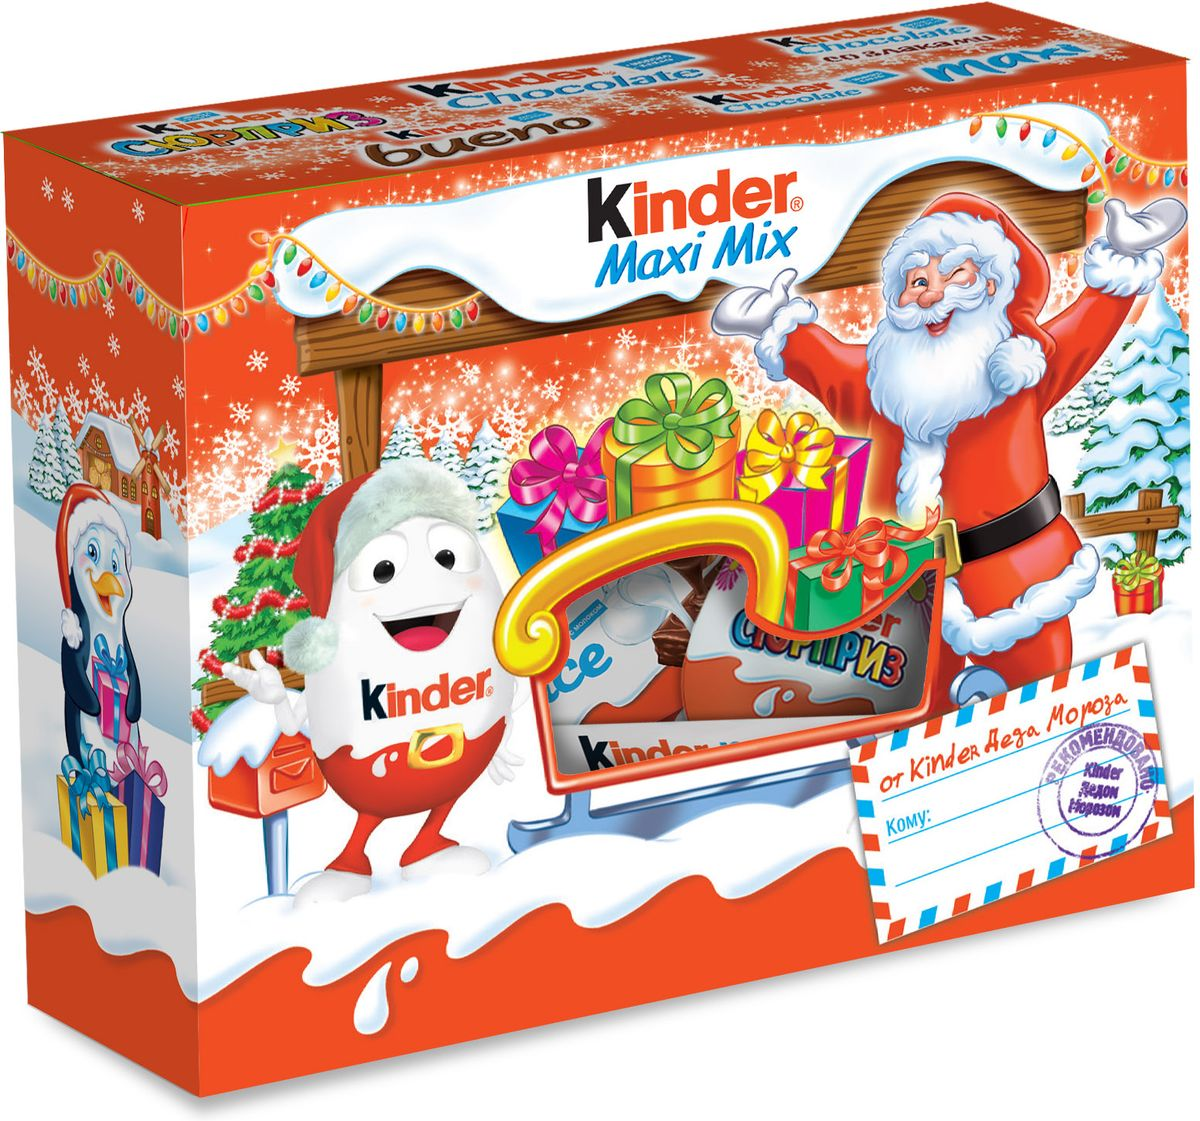 Kinder Maxi Mix набор: Kinder Surprise, Kinder Chocolate со злаками, Kinder Chocolate Maxi, Kinder Chocolate (50 г), Kinder Bueno, 223 г ufeelgood organic chocolate golden berry физалис в сыром шоколаде 50 г